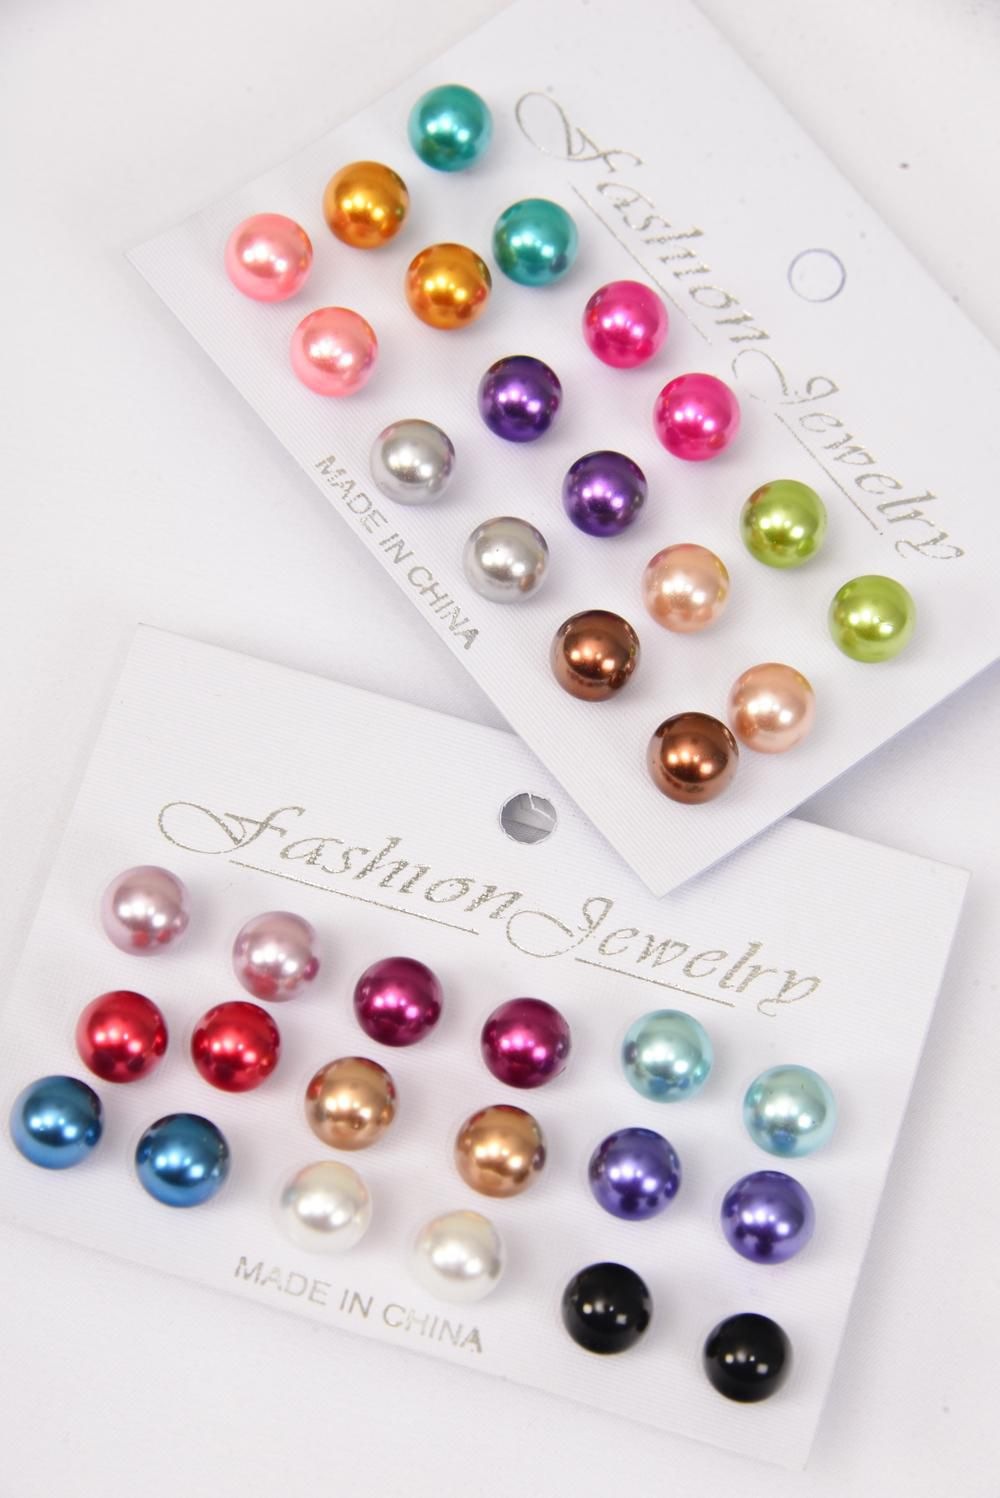 Earrings 9 PAIR 10 mm ABS Pearl Multi Color Asst/DZ **Post** Pre Color Asst ,each Card has 9 pair per Earrings,12 card=Dozen,Earring card & Opp bag & UPC Code -